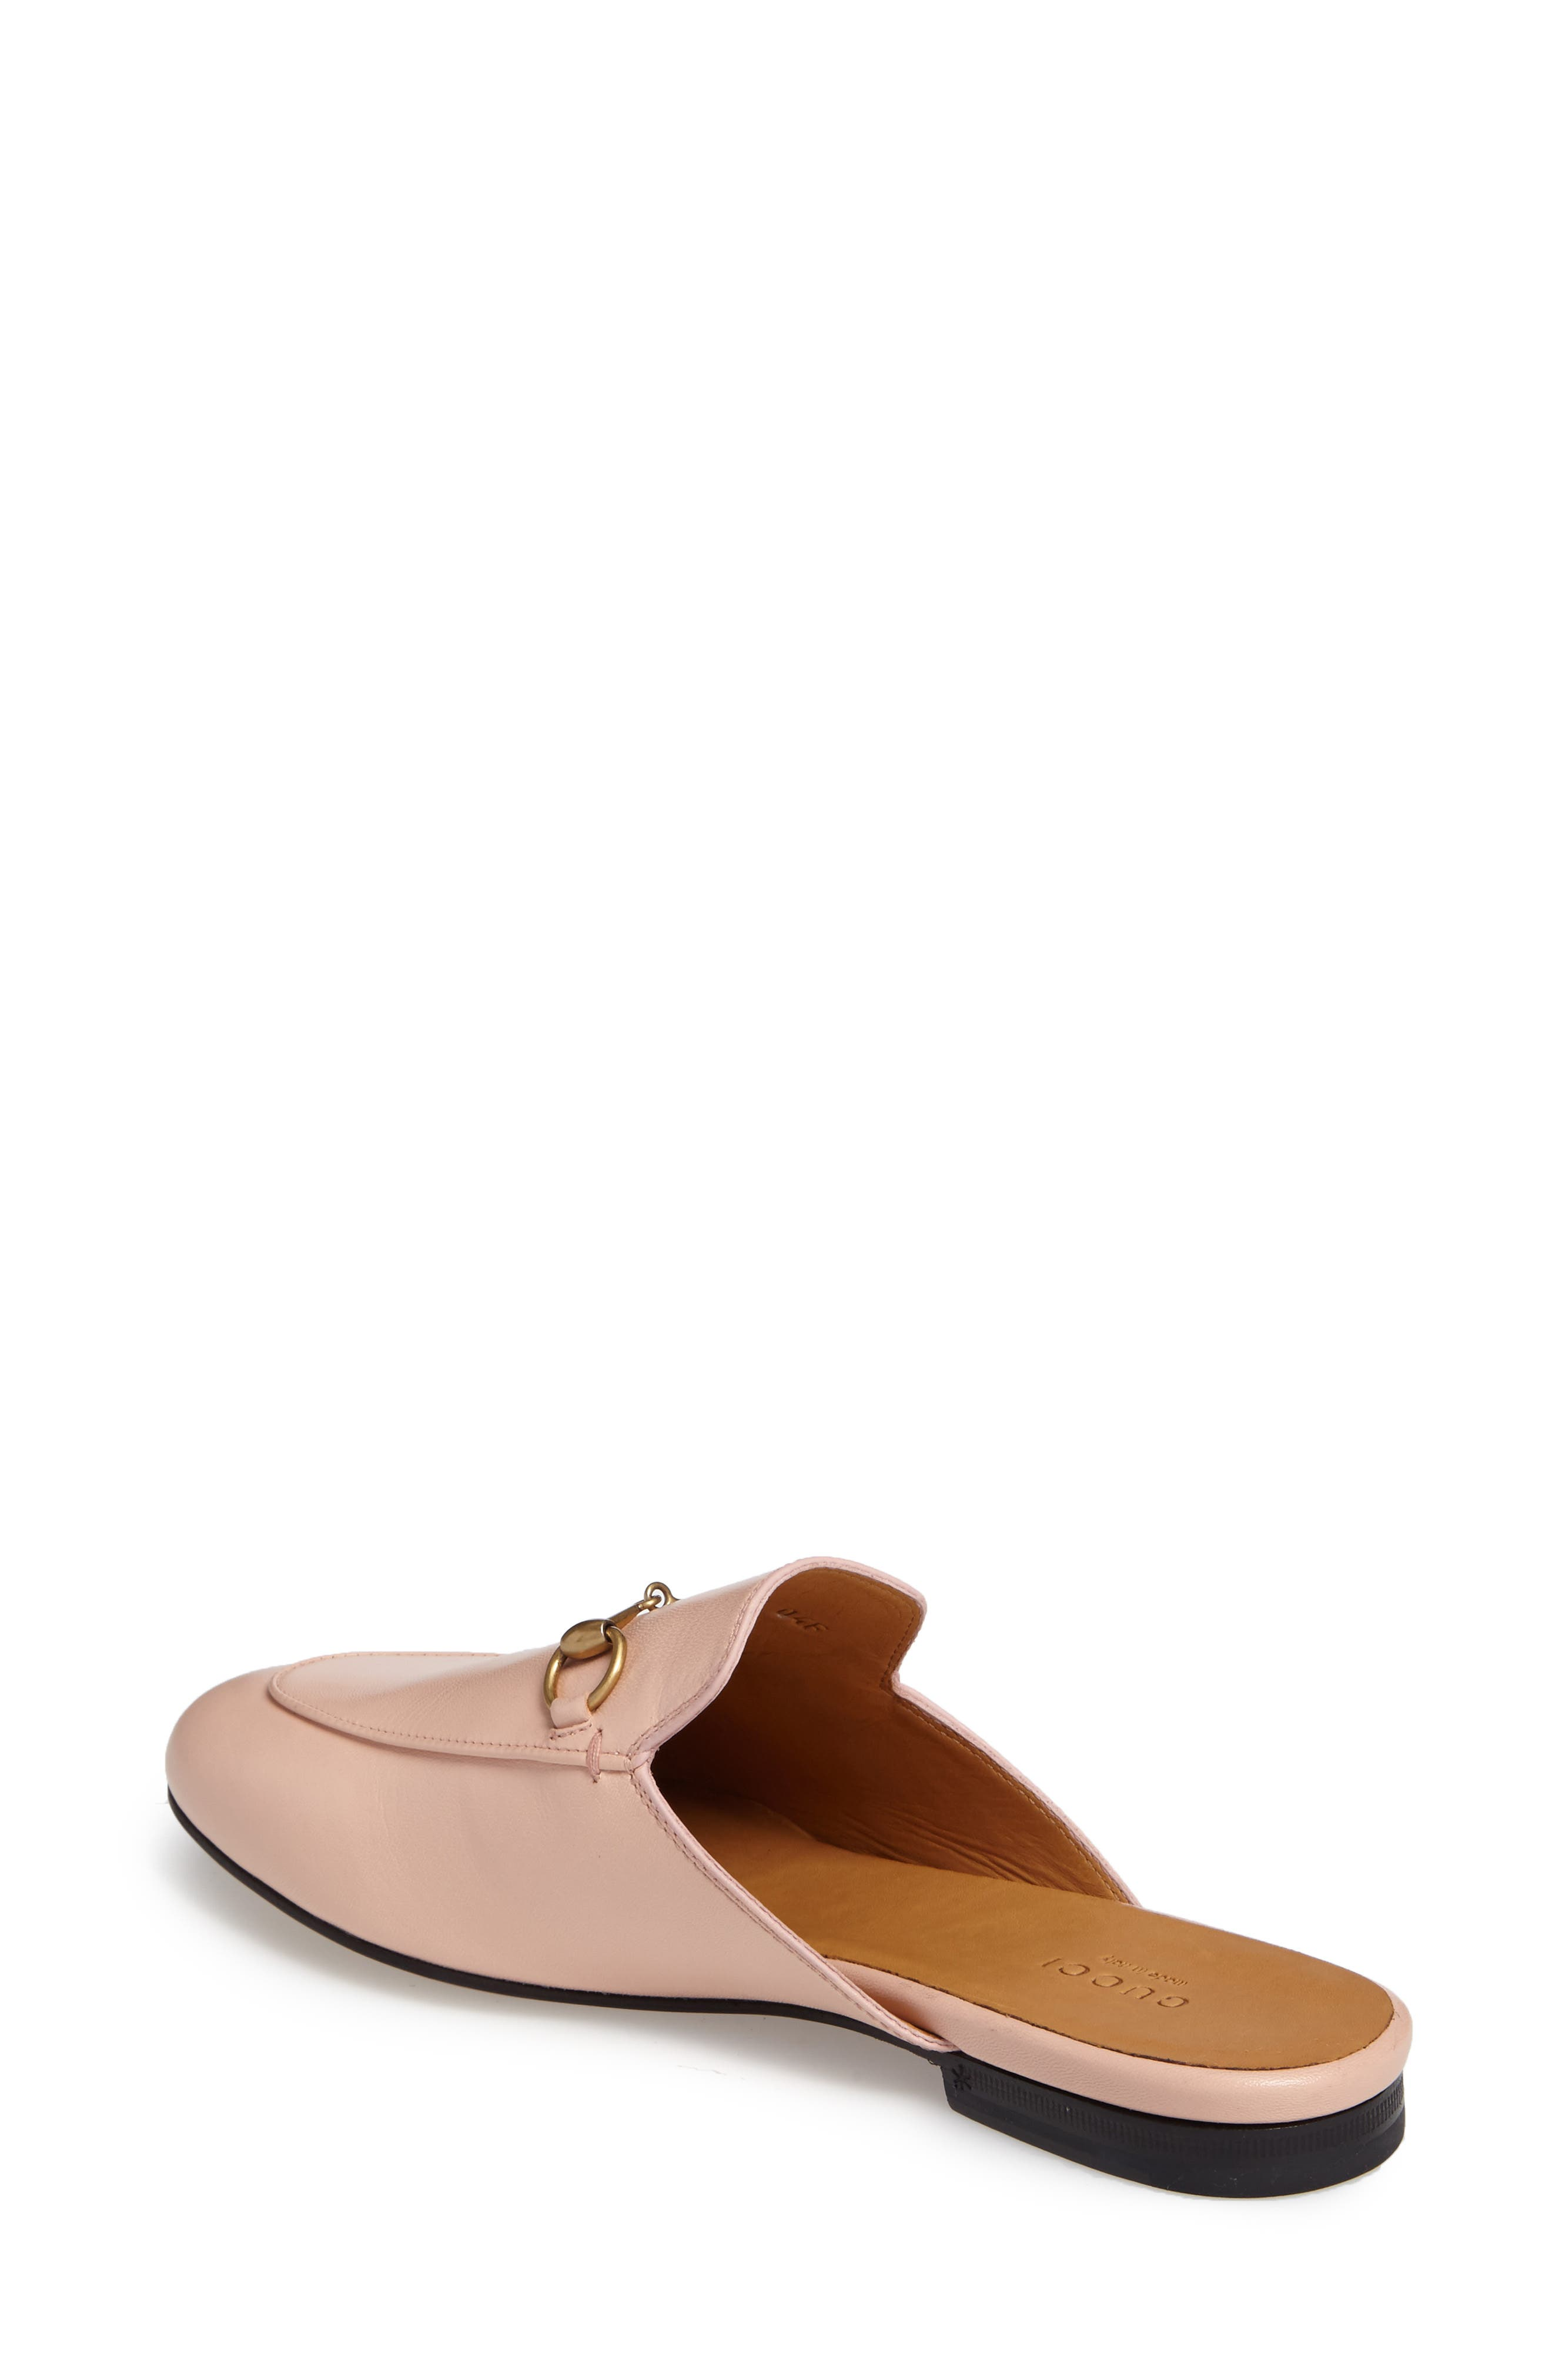 Alternate Image 2  - Gucci Princetown Loafer Mule (Women)